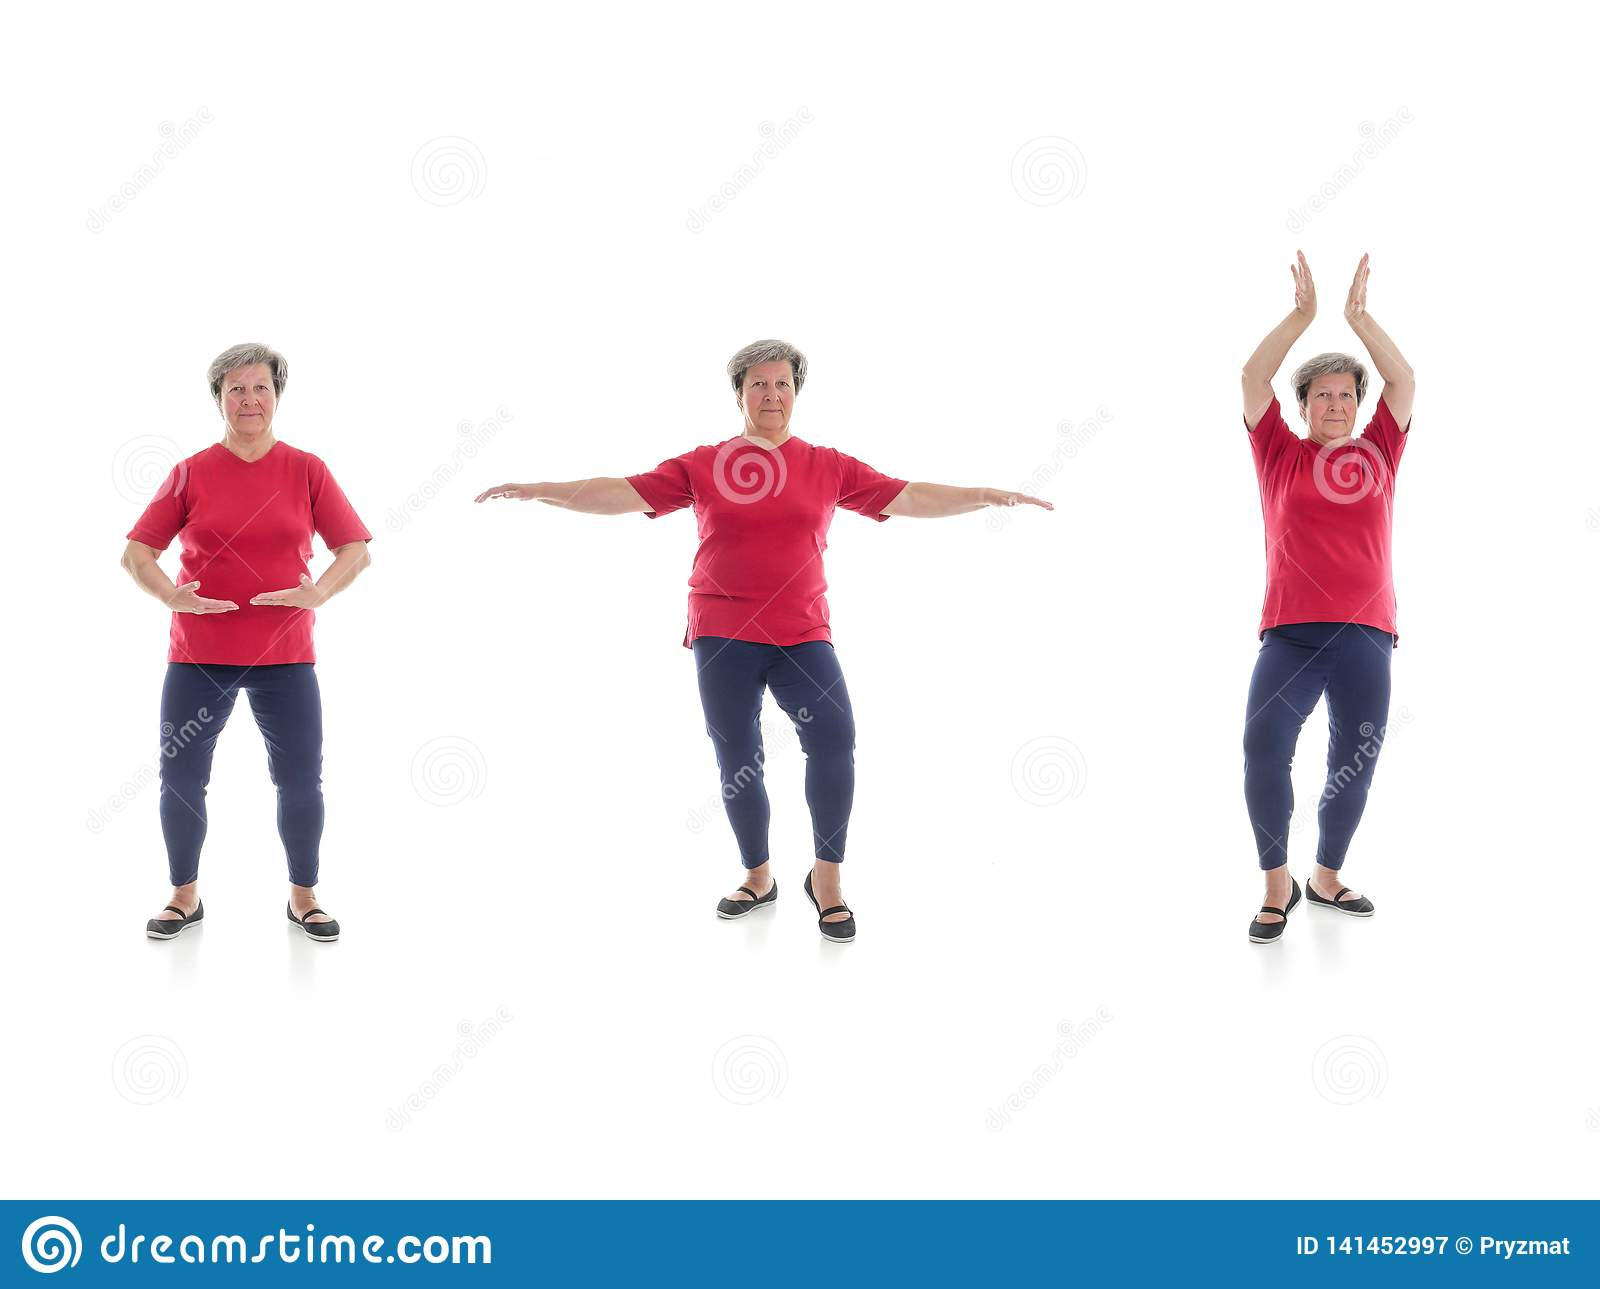 Tai chi forms performed by older woman